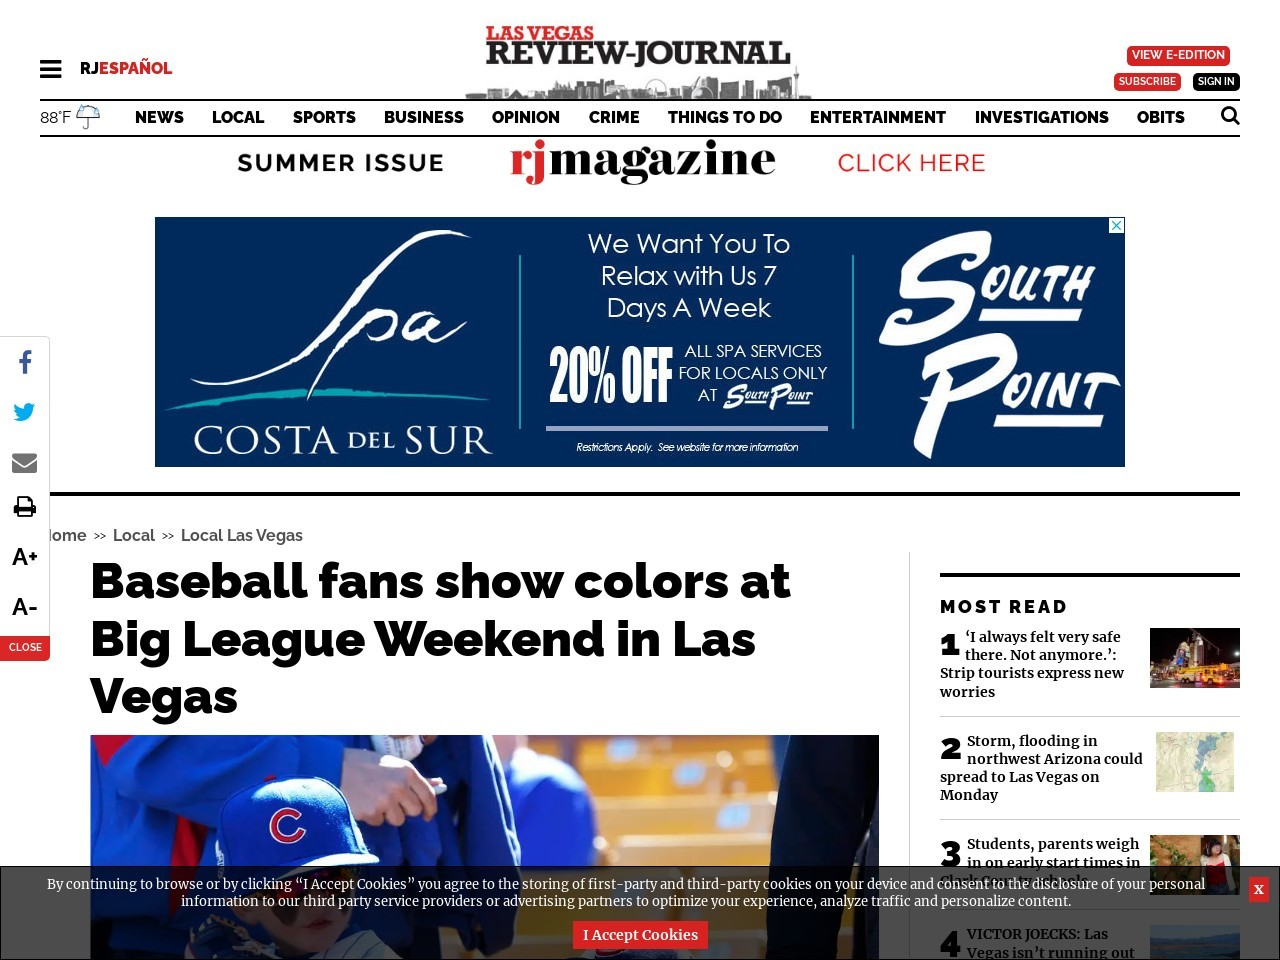 Baseball fans show colors at Big League Weekend in Las Vegas